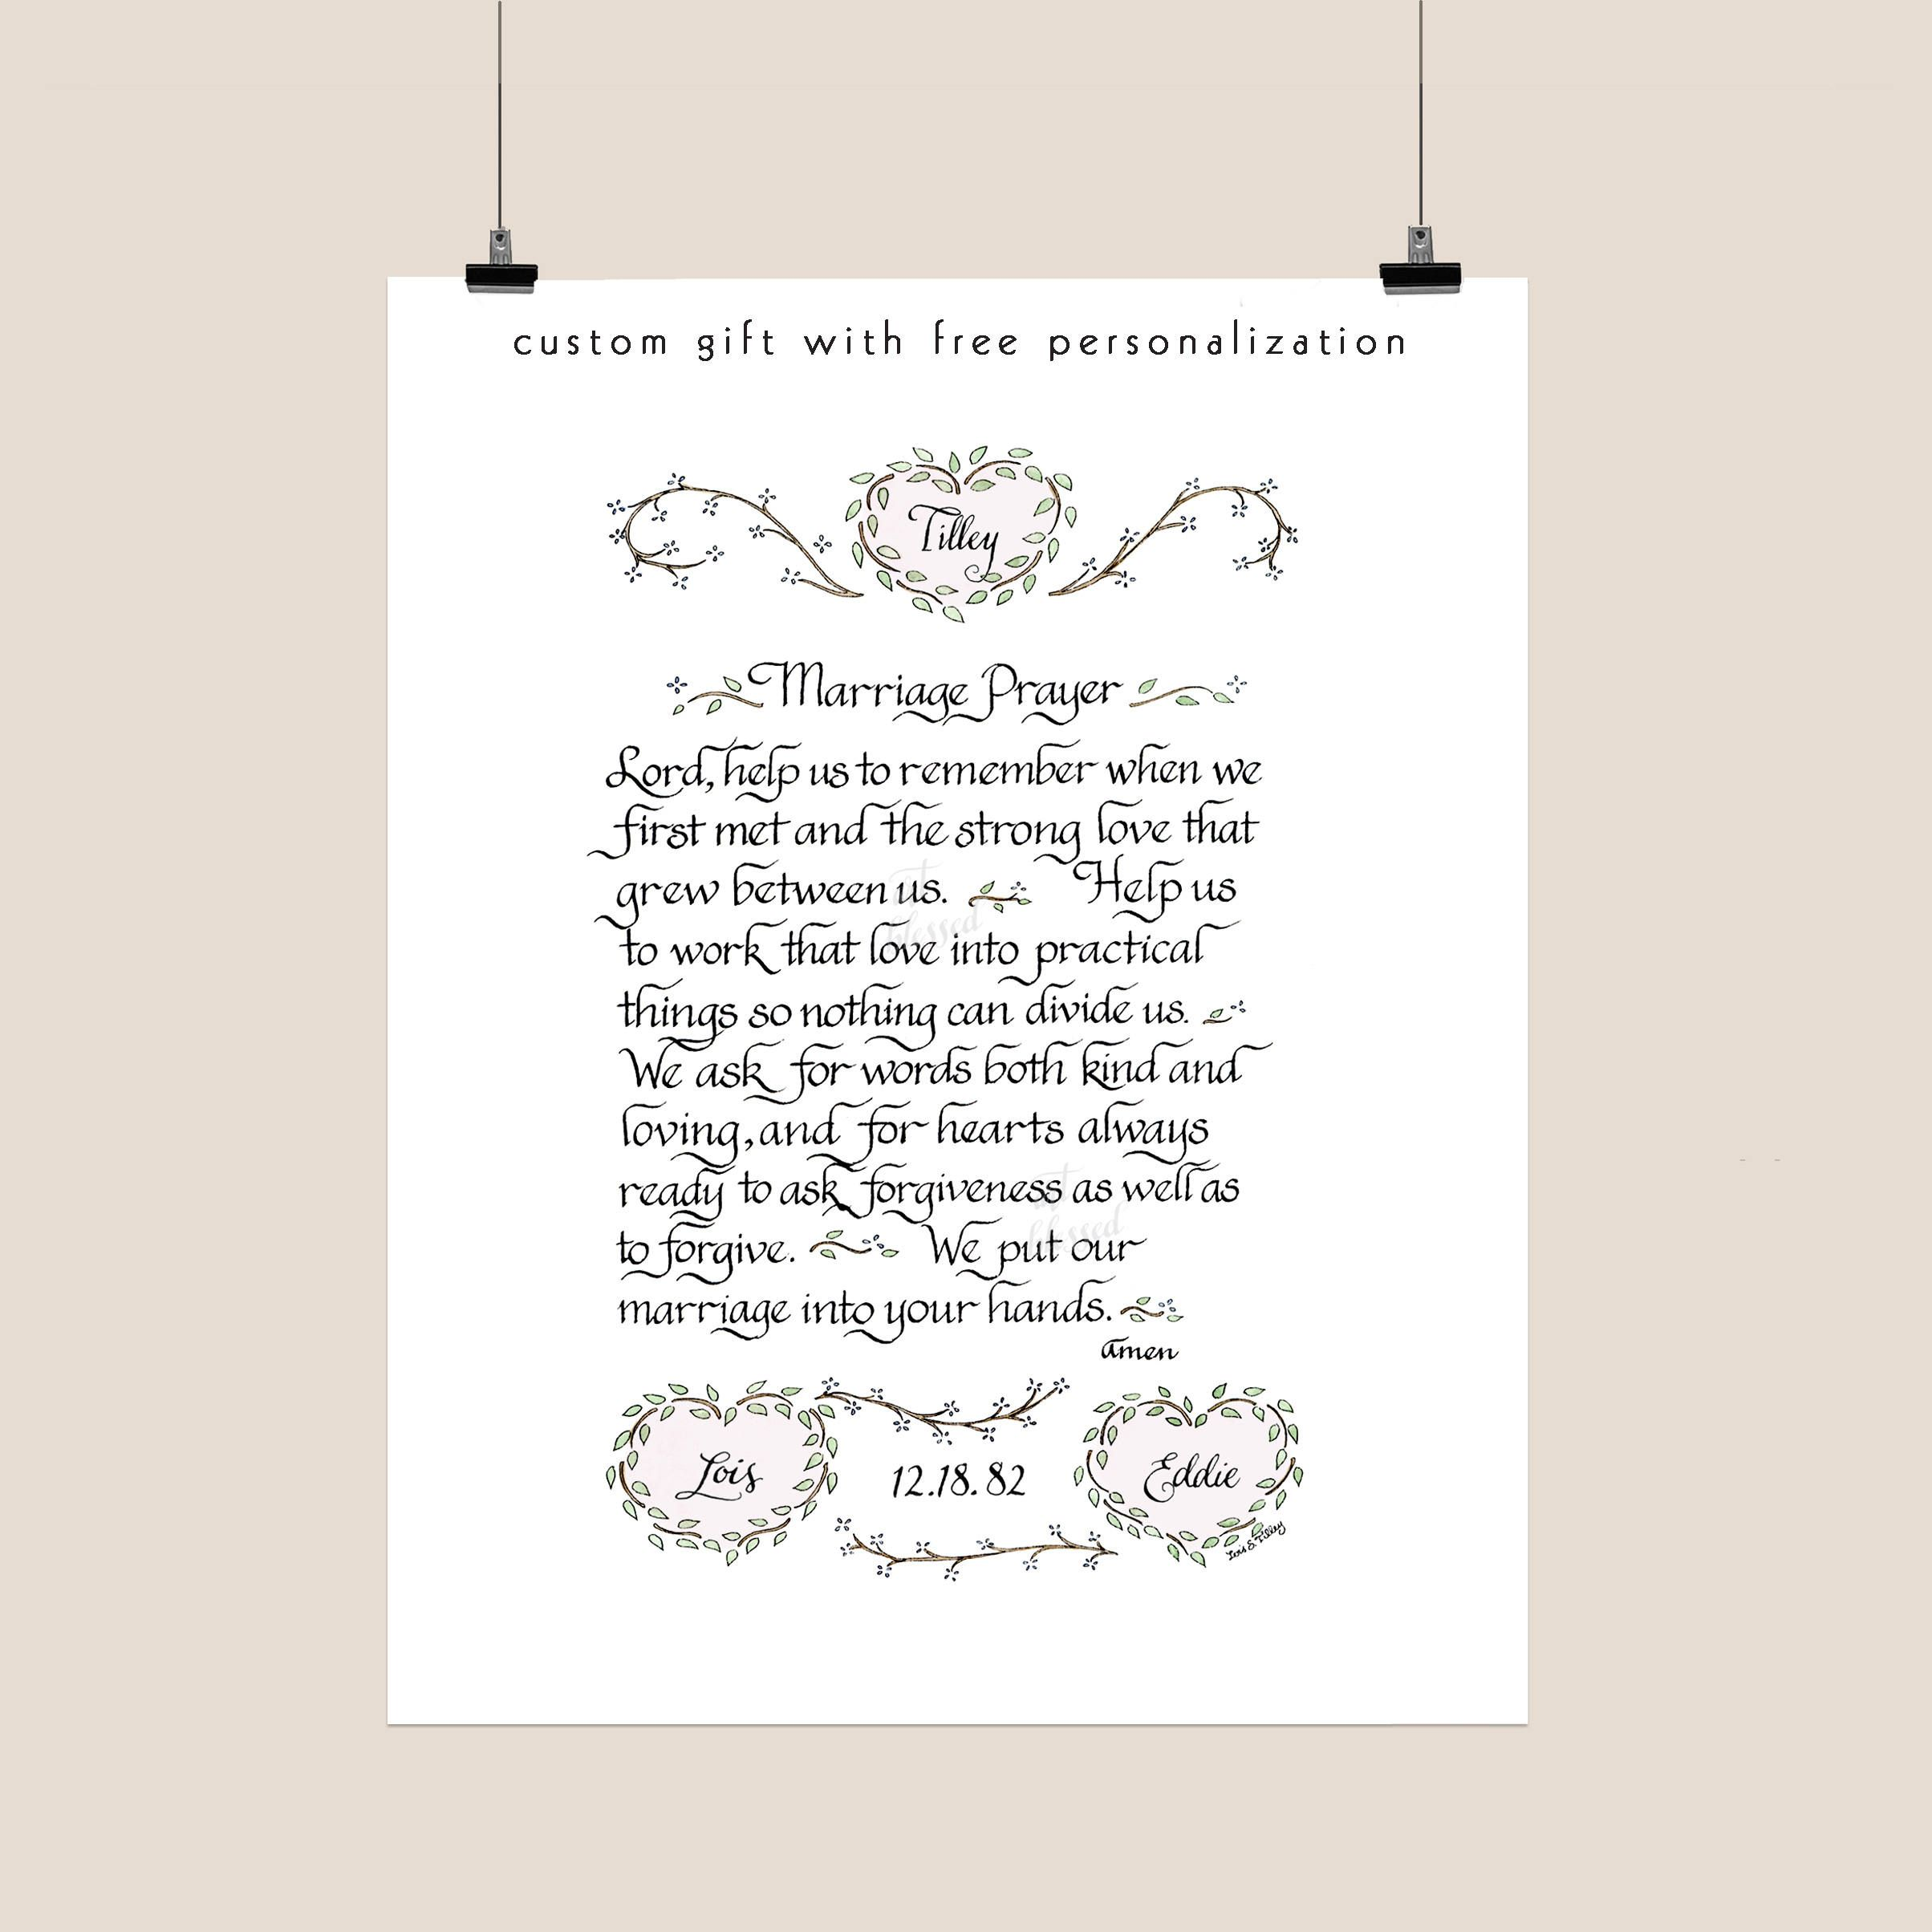 marriage prayer personalized wedding gift anniversary gift housewarming gift bridal shower gift calligraphy art